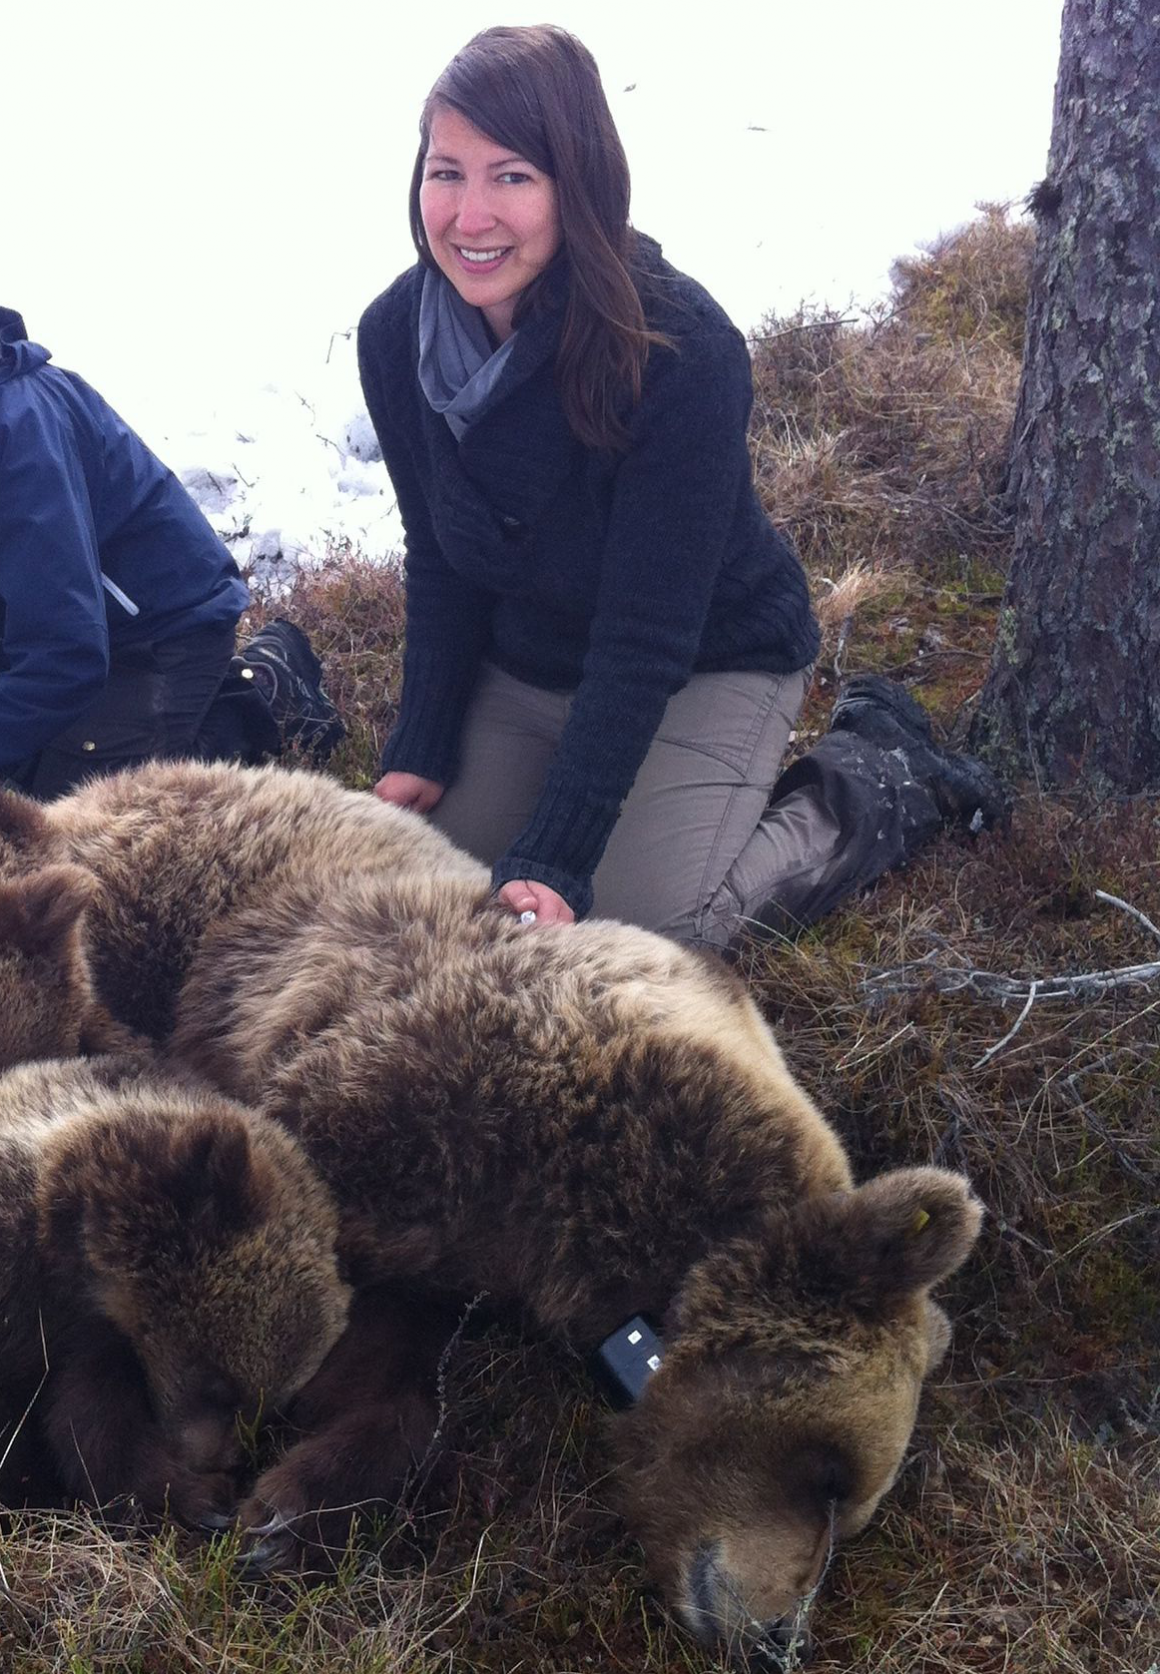 Phd student Anne Hertel in the field.